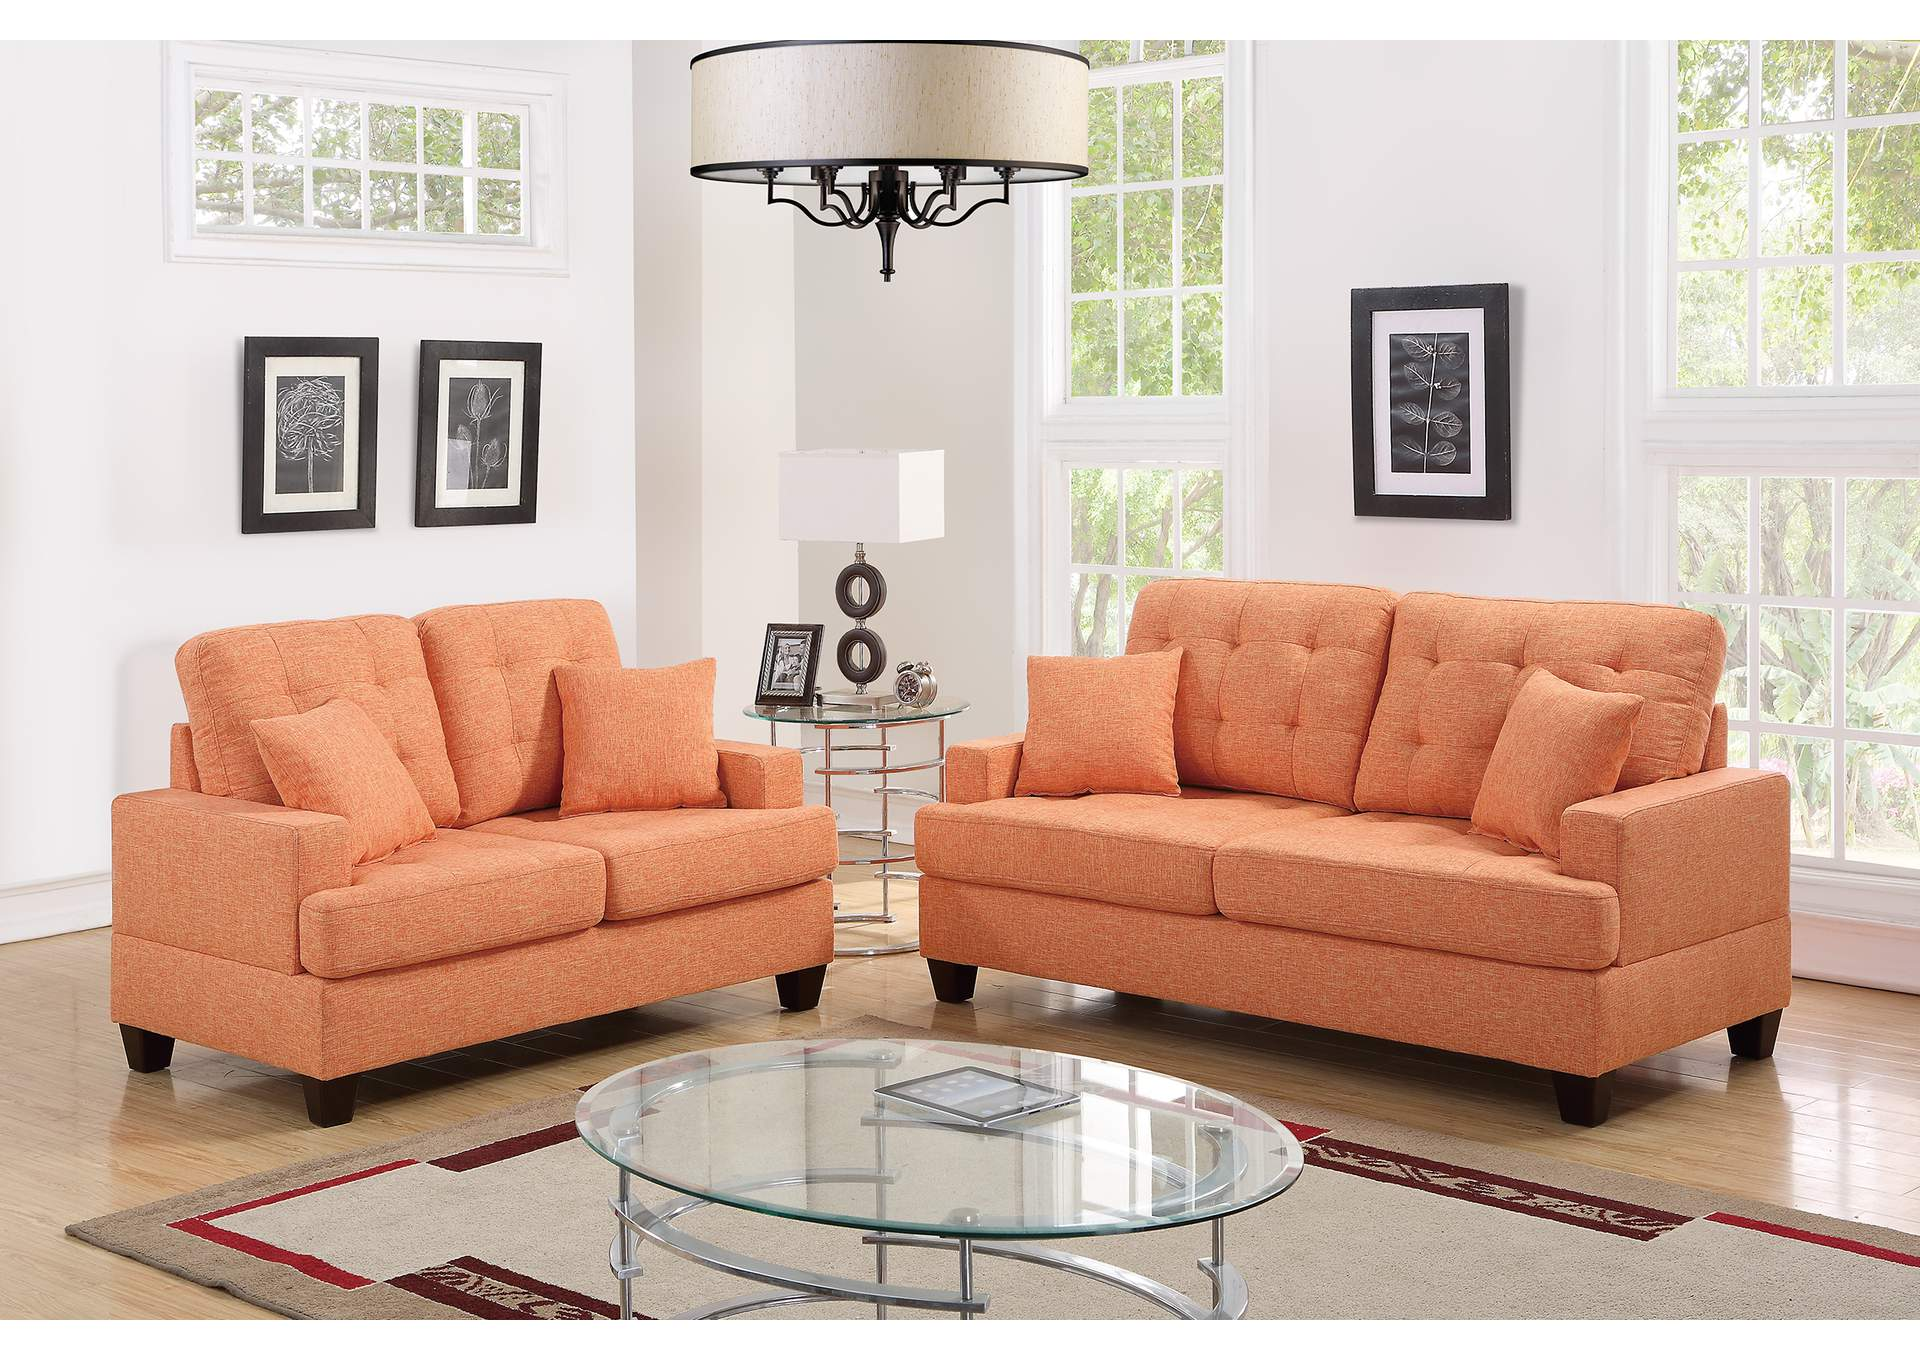 Citrus 2 Piece Sofa Set,Poundex